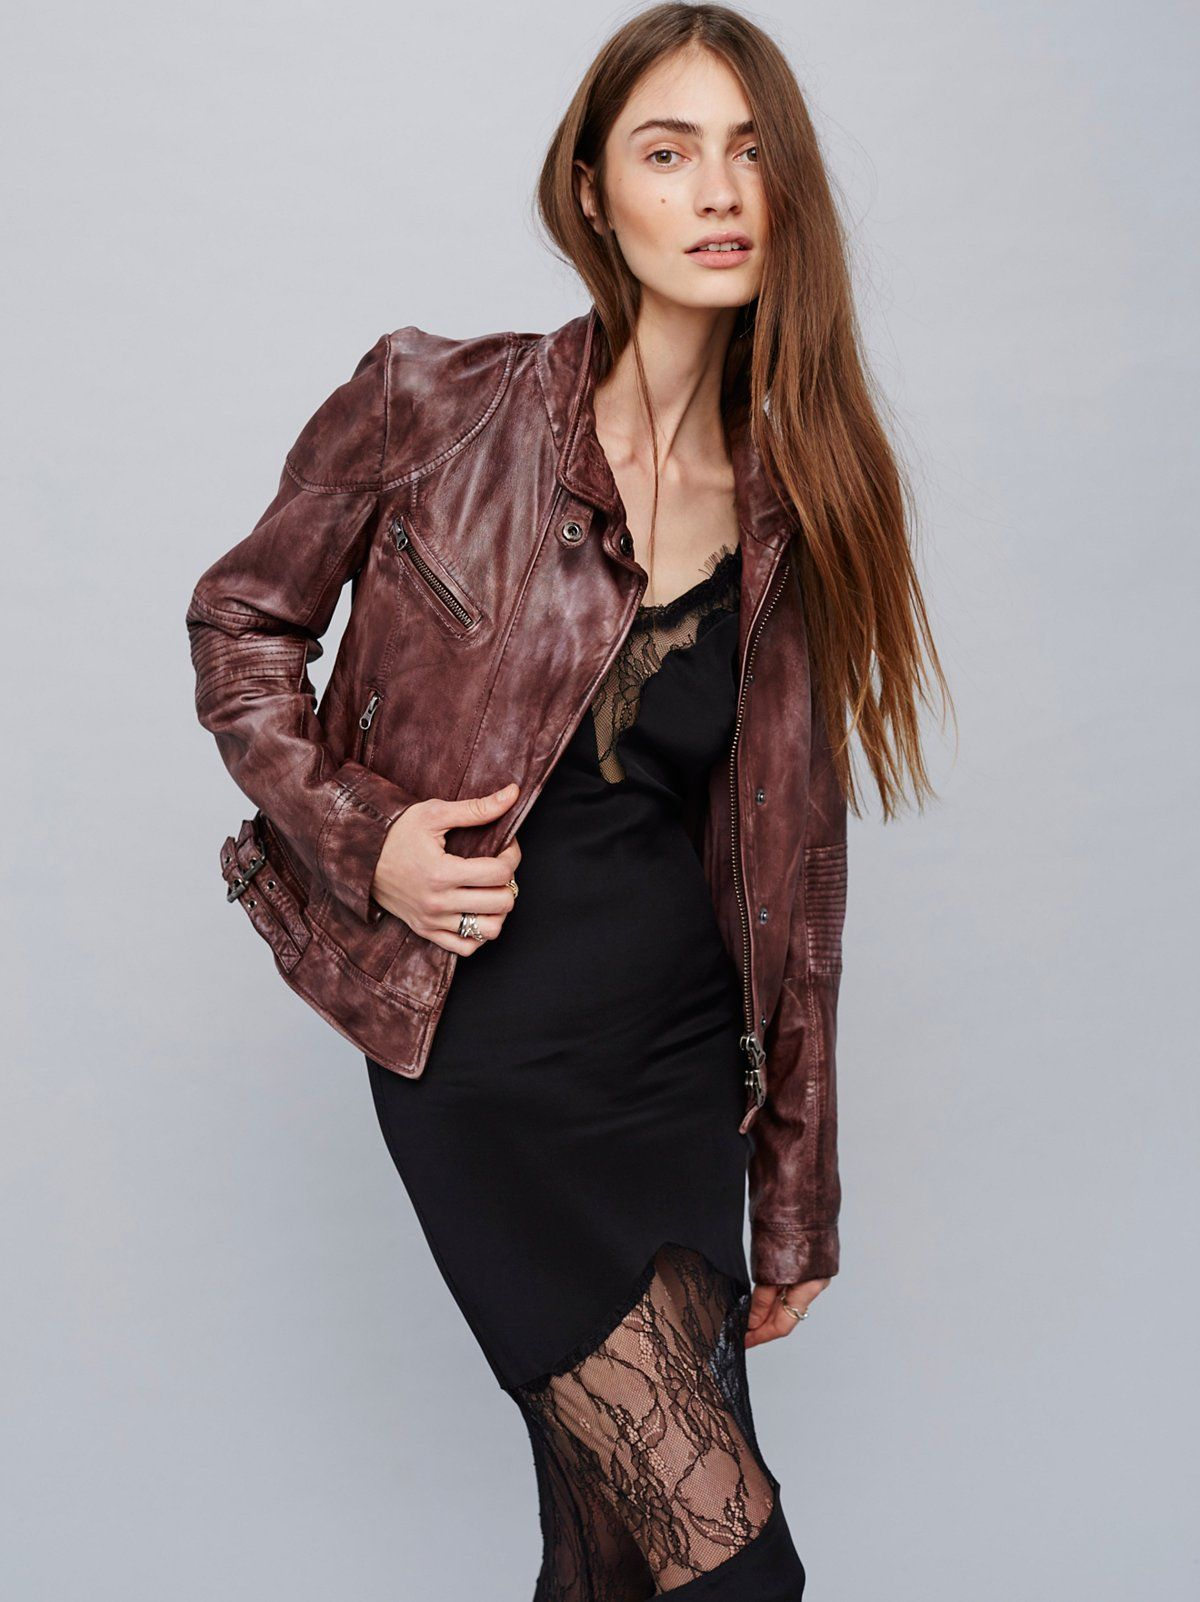 Fitted And Rugged Leather Jacket Leather Jacket Fashion Rugged Leather